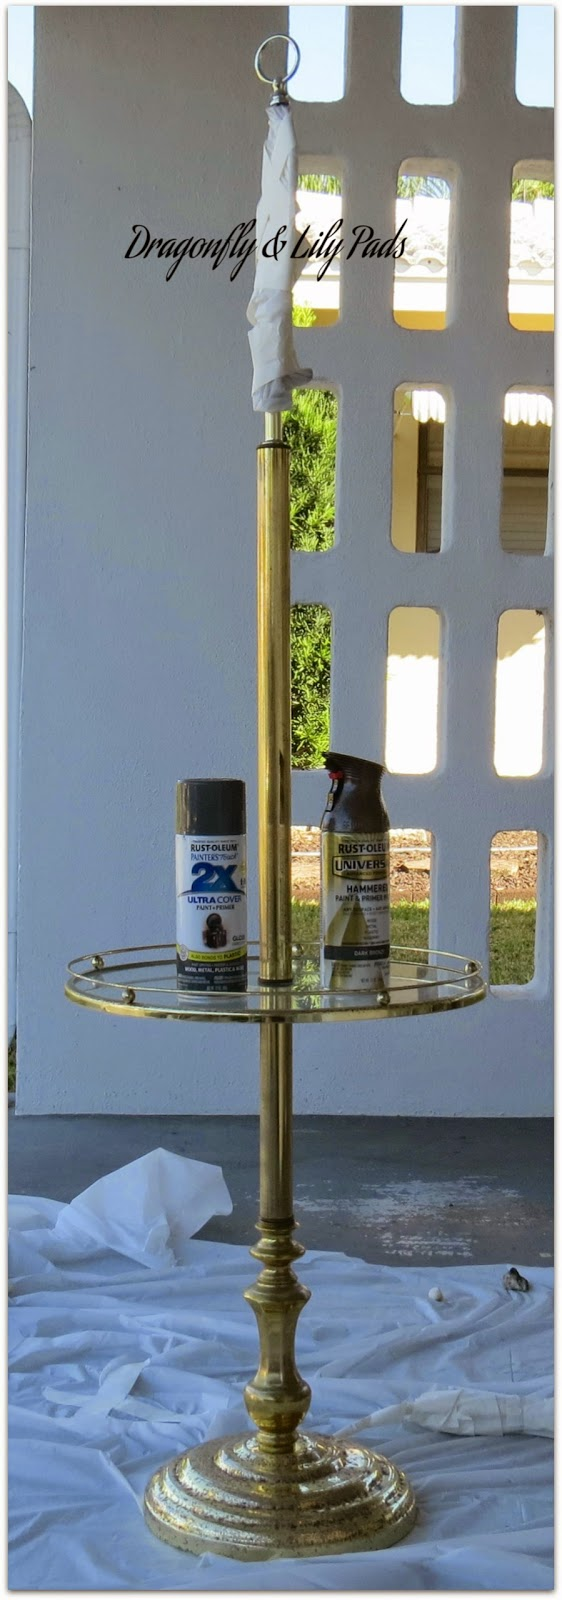 Brass Floor Lamp, rusted, Paint Cans, Table Cloth, Dollar Store, Before